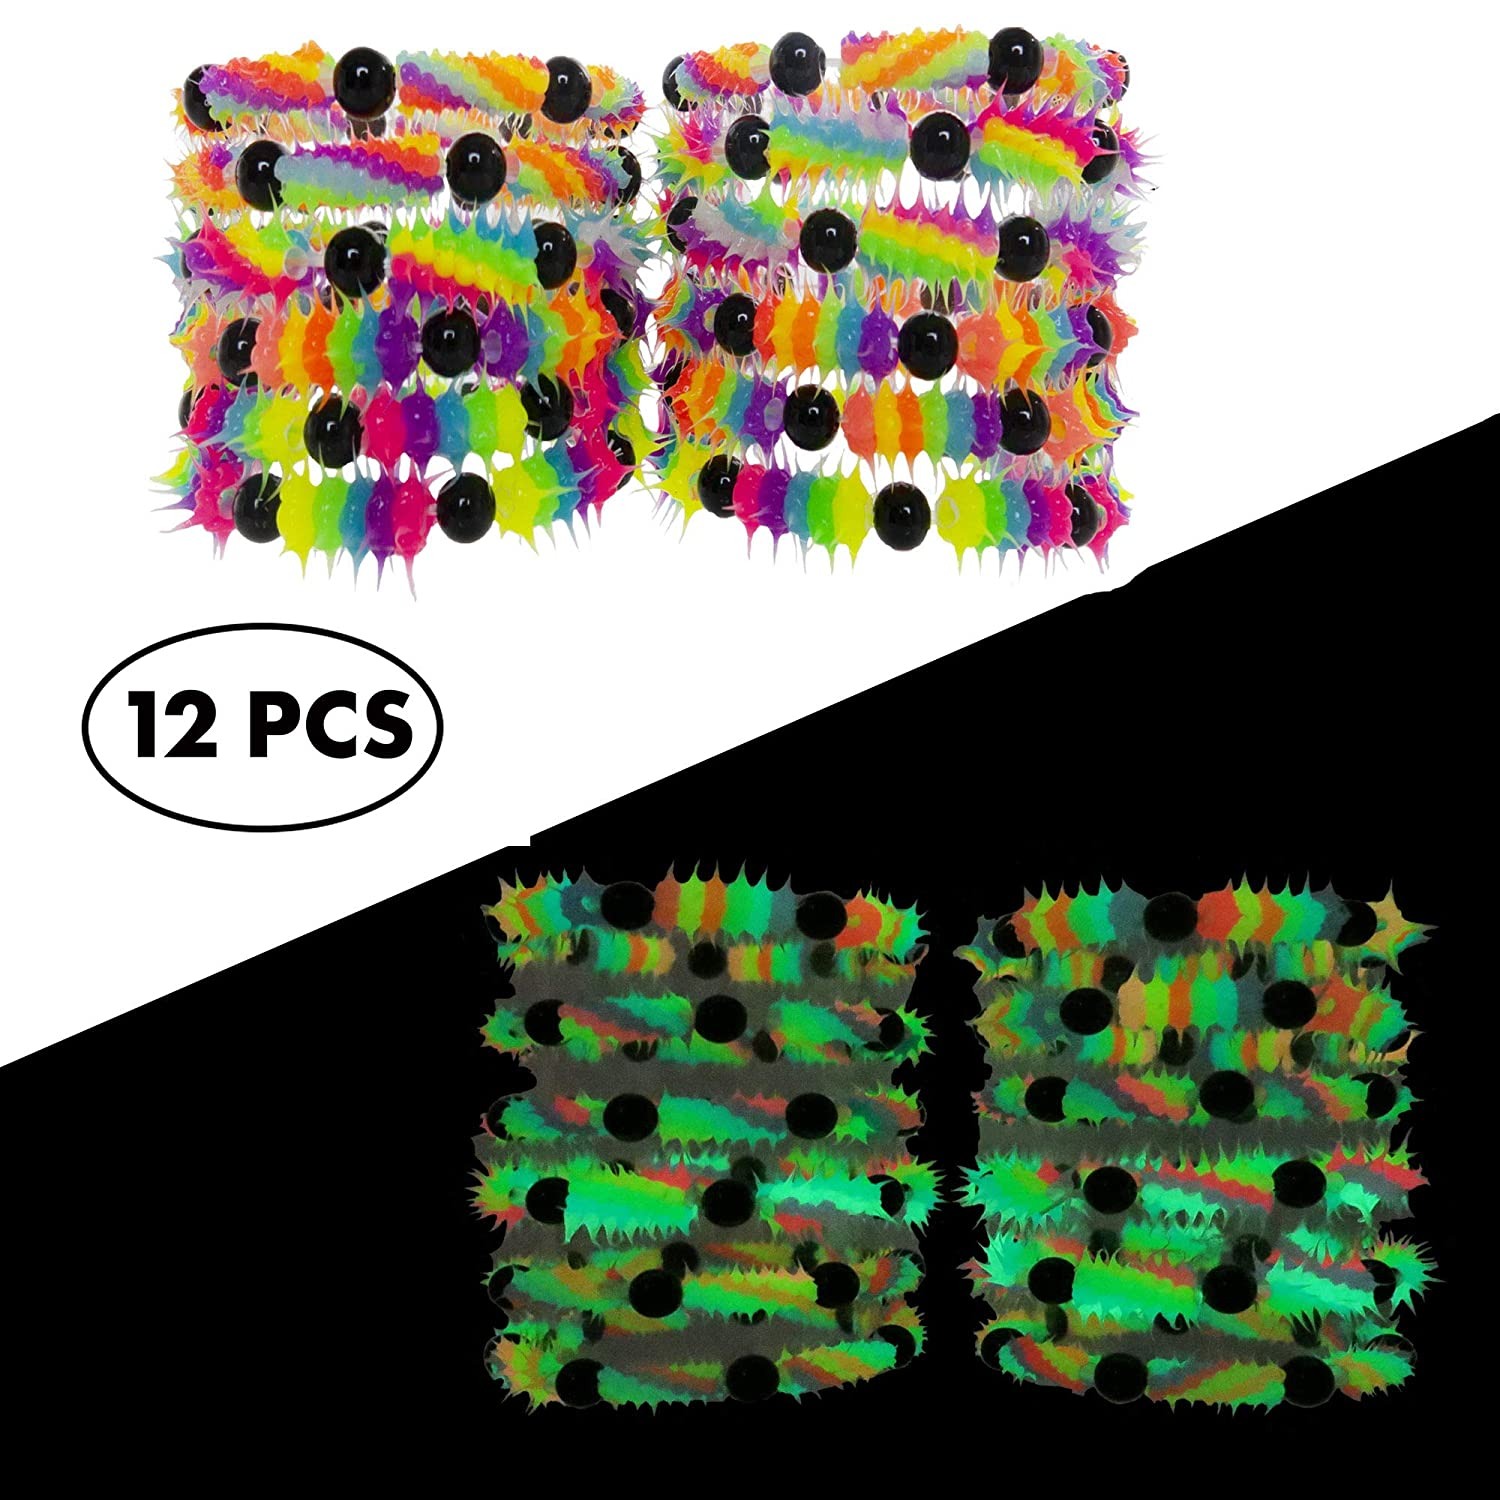 Party Favors and Supplies Frogsac Fluorescent and UV Led Black Light Reactive Neon Rave Beaded Stretch Bracelet Toy Set FROG SAC Glow in The Dark Bracelets for Boys Girls Teens Kids 12 PCs Pack